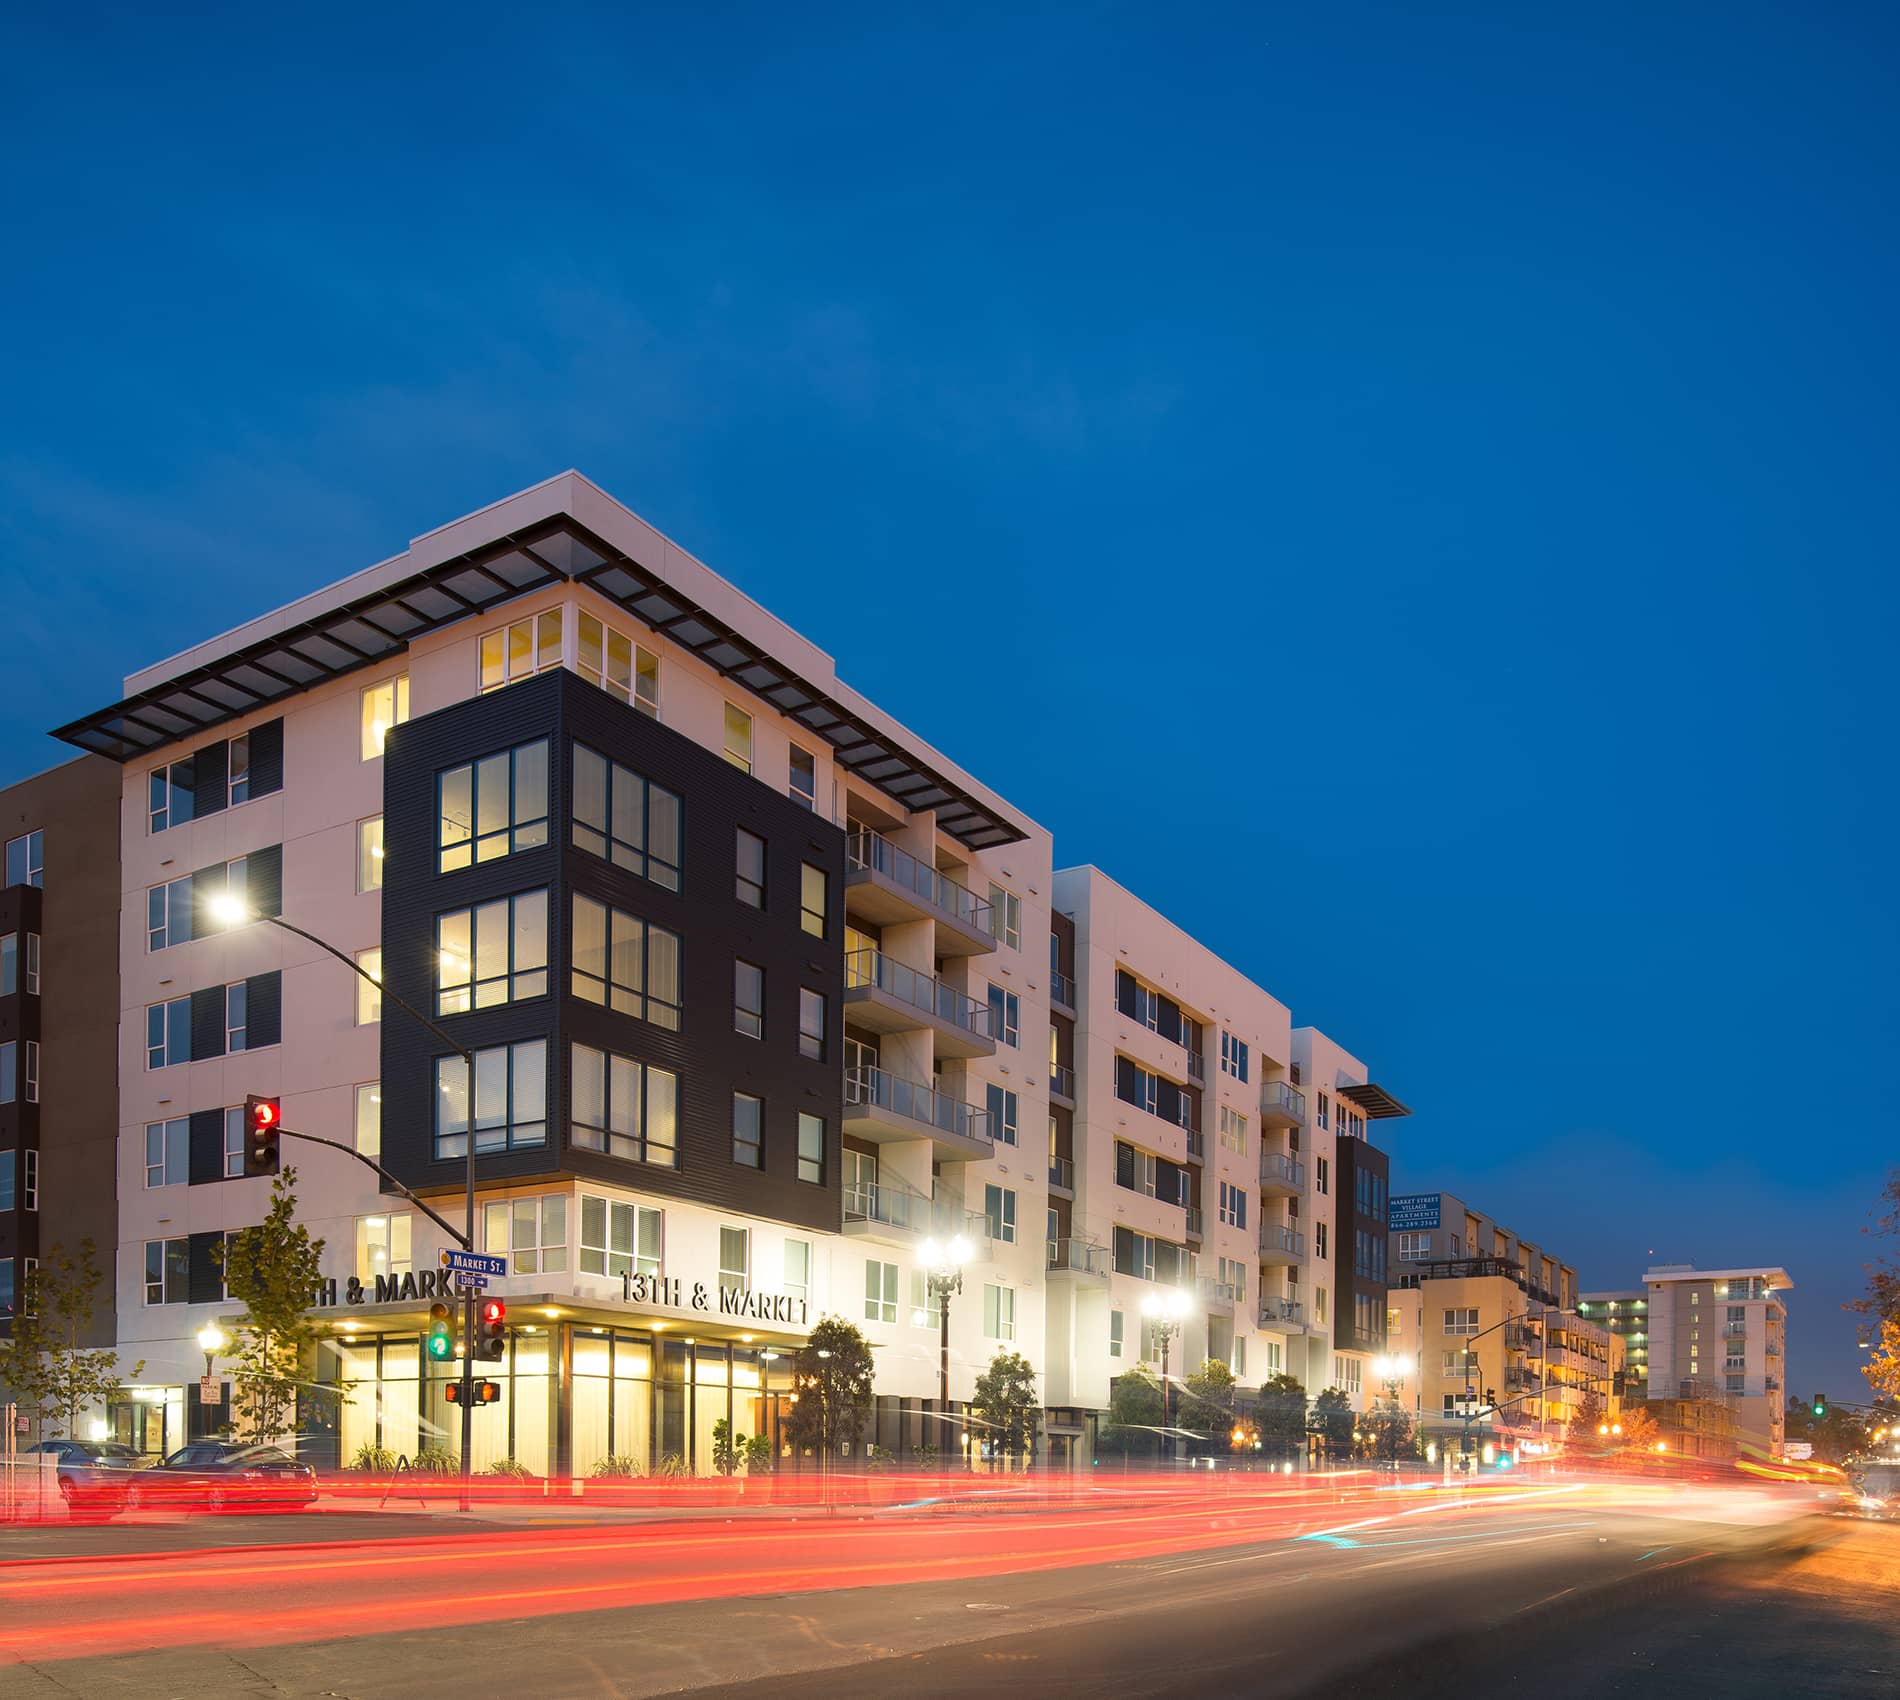 Kasa San Diego Furnished Apartments for rent